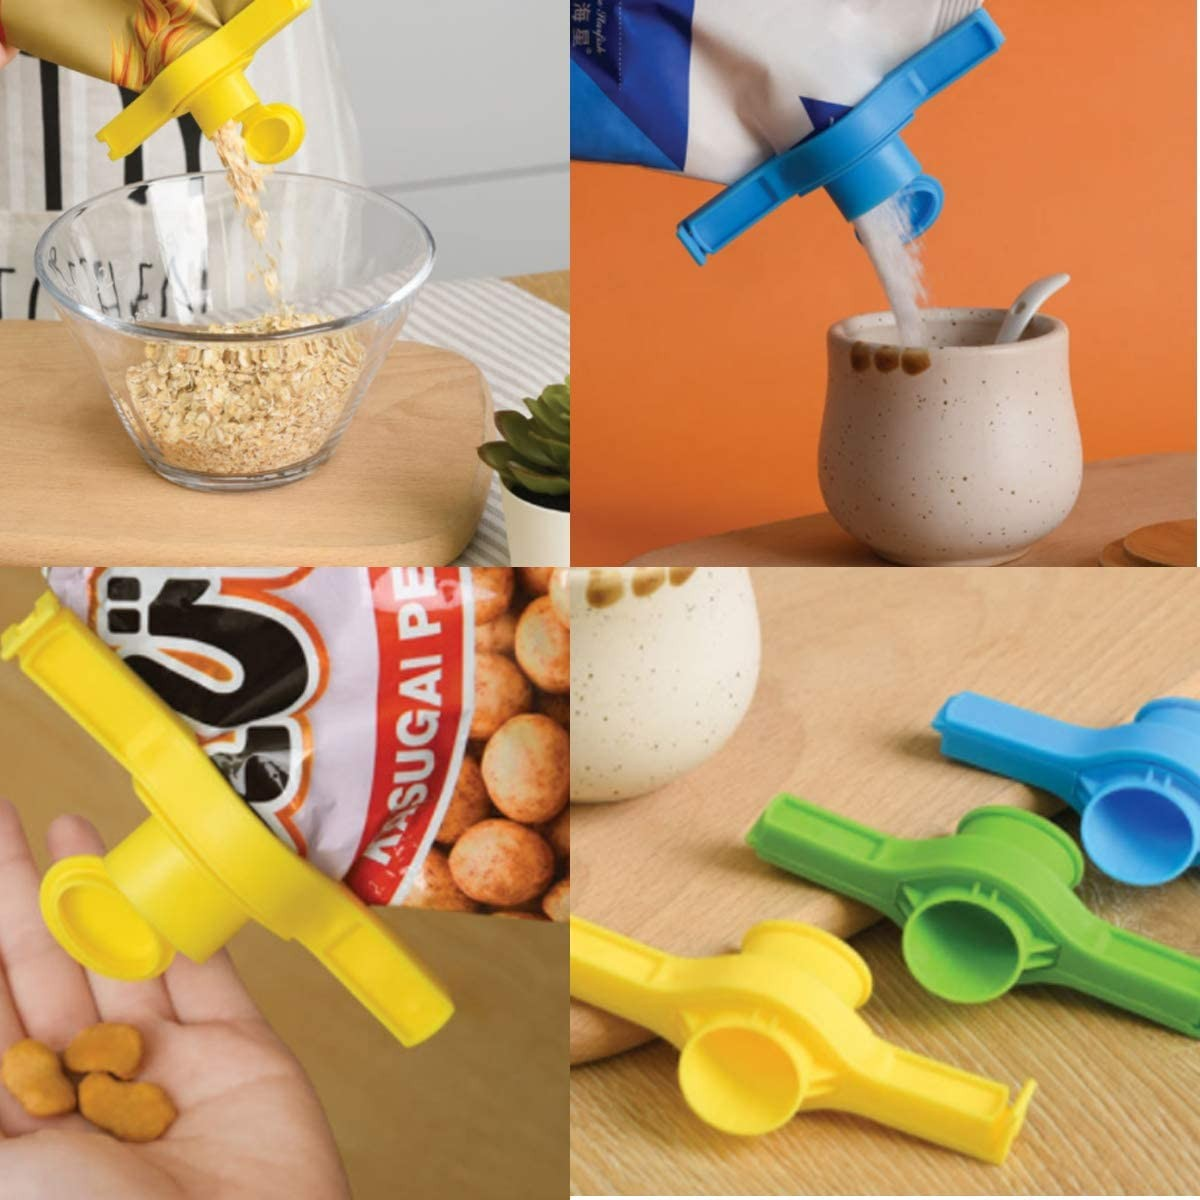 Food Sealing Clips Sugar Bag Clips - Plastic Discharge Nozzle - Folding lock - Home Food Storage Creative Reusable Kitchen Tool